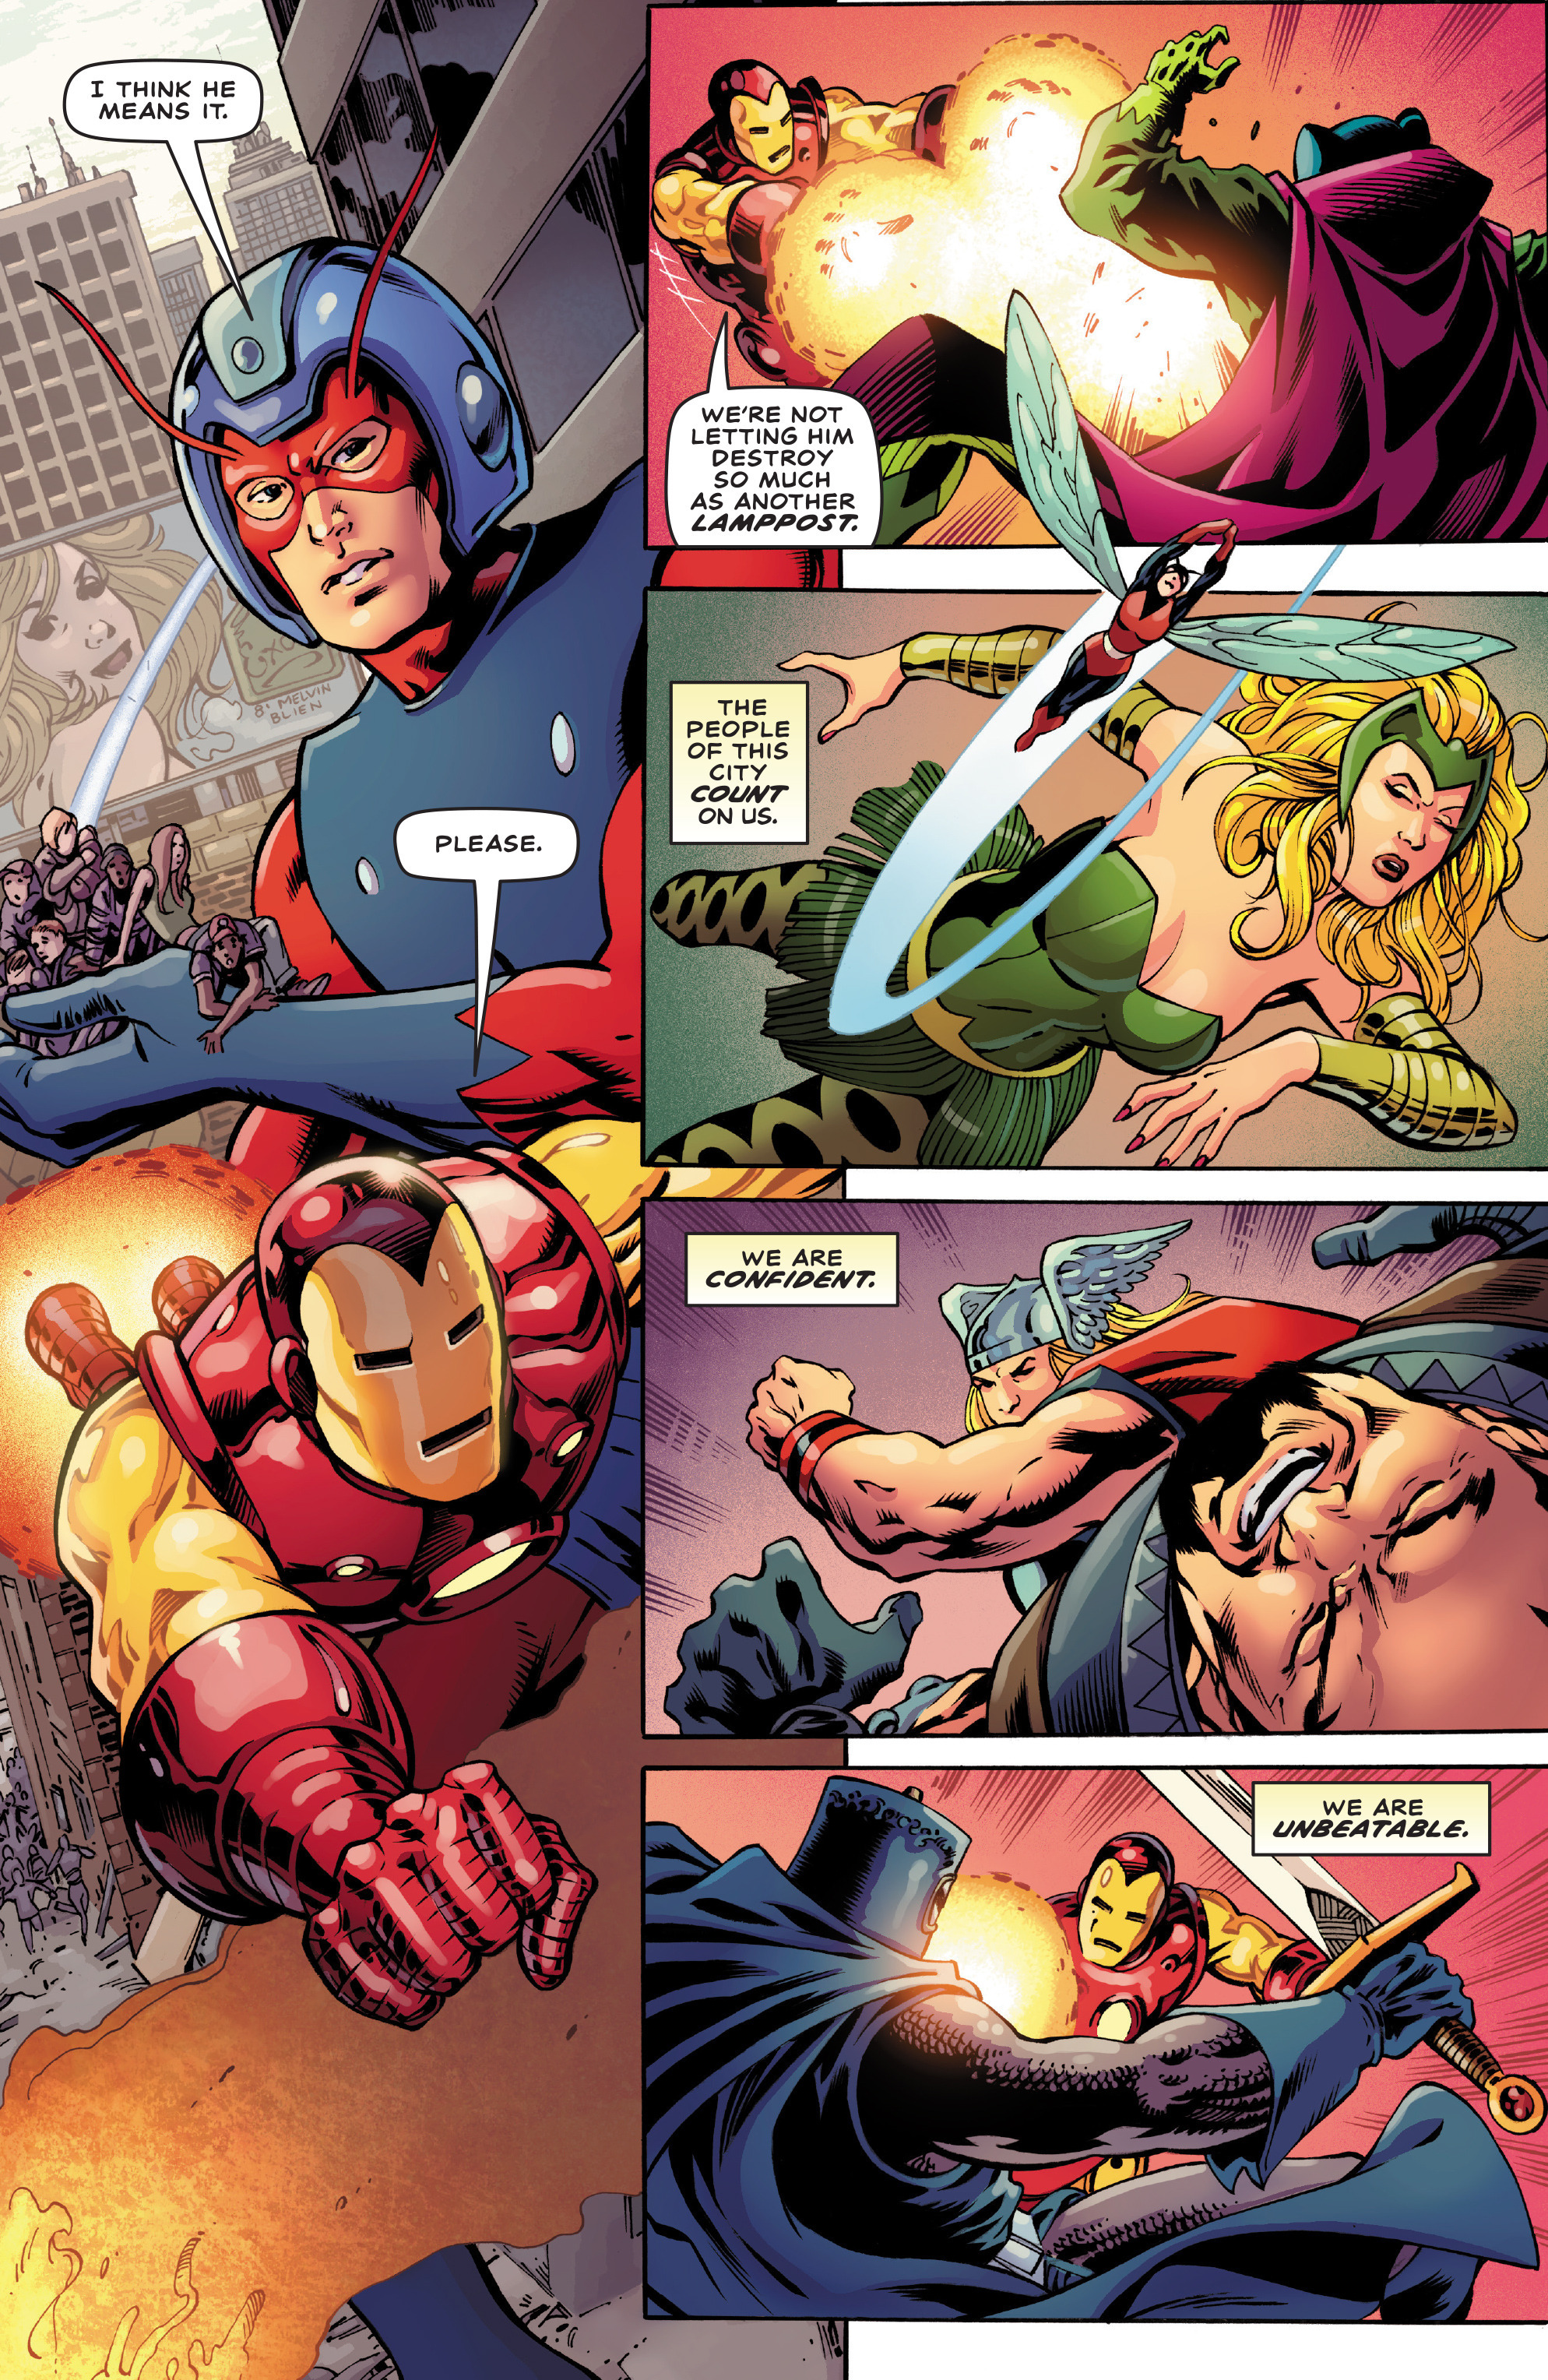 Read online Avengers (2016) comic -  Issue #1.1 - 5